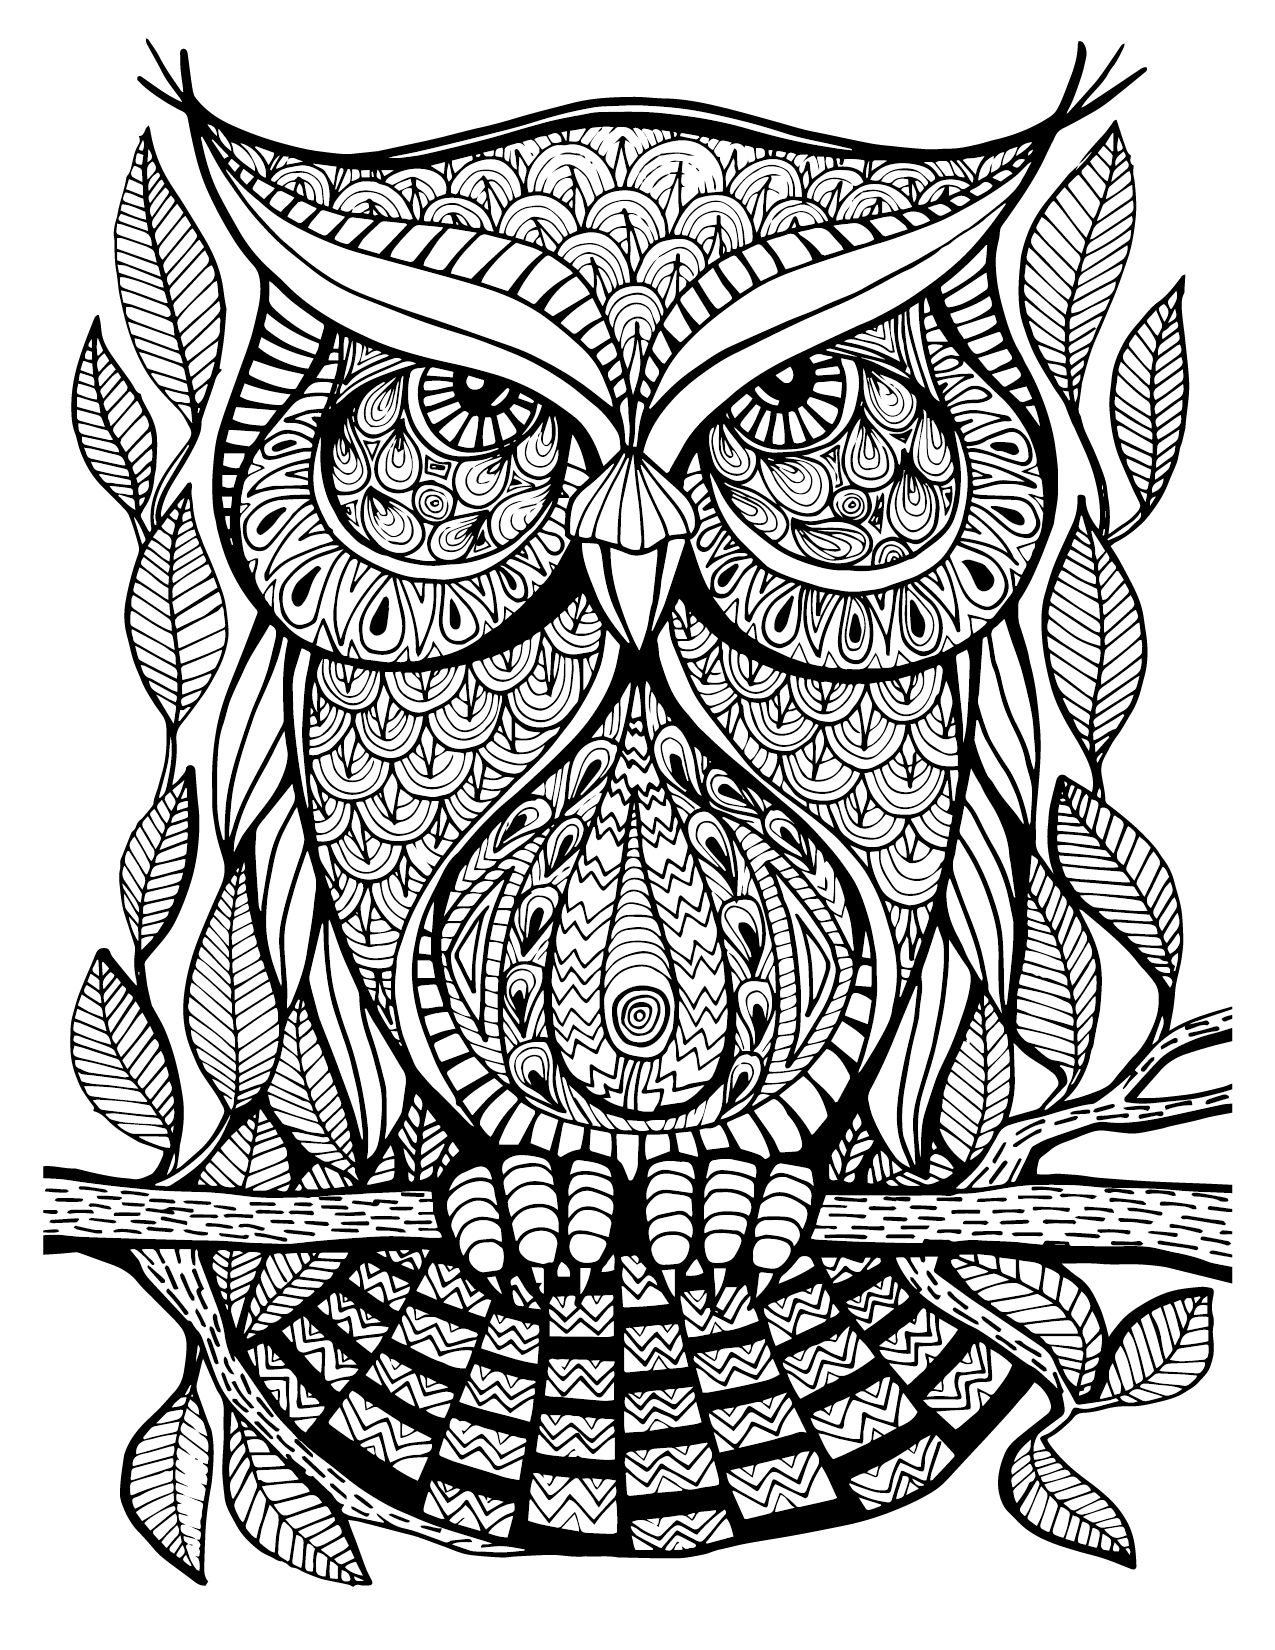 Check out this great adult coloring image straight out of our new ...